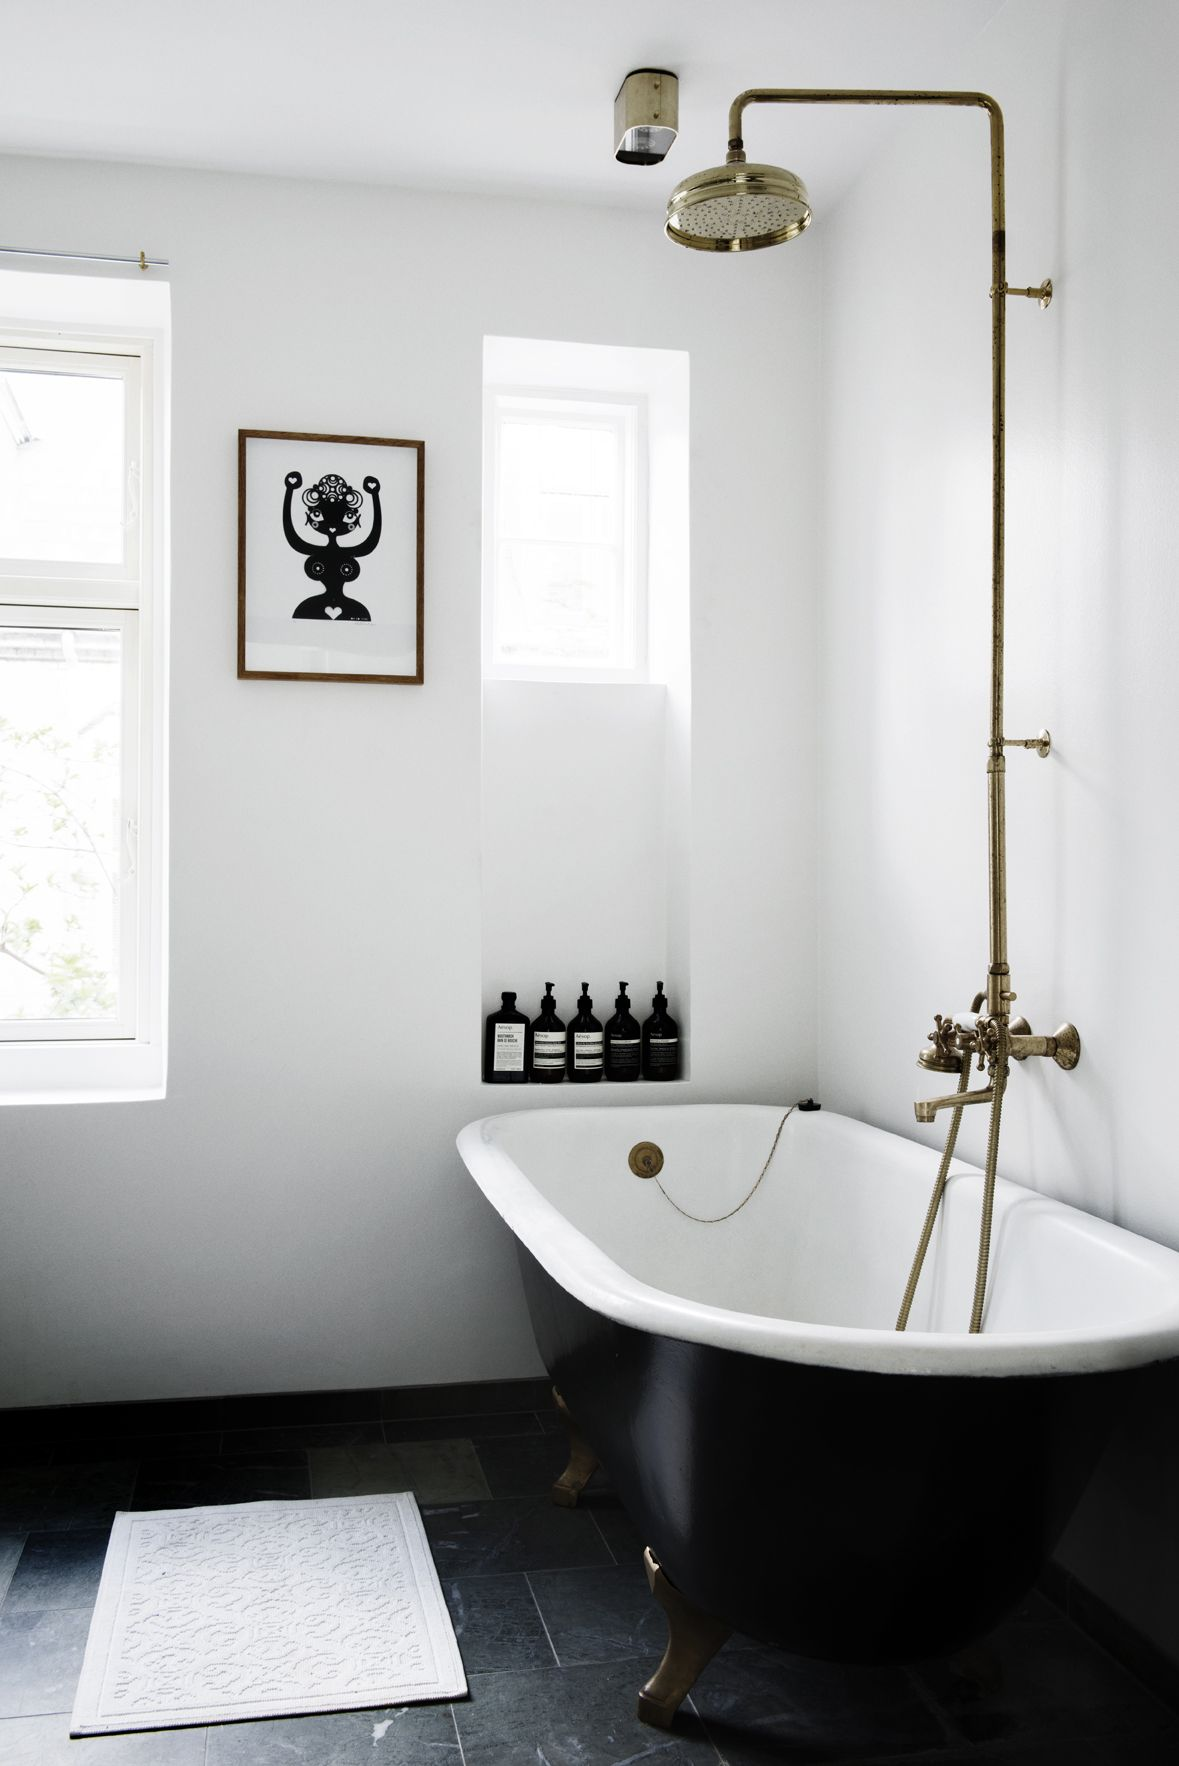 Projects kbh kbenhavns mbelsnedkeri interior pinterest family bathroom dailygadgetfo Gallery